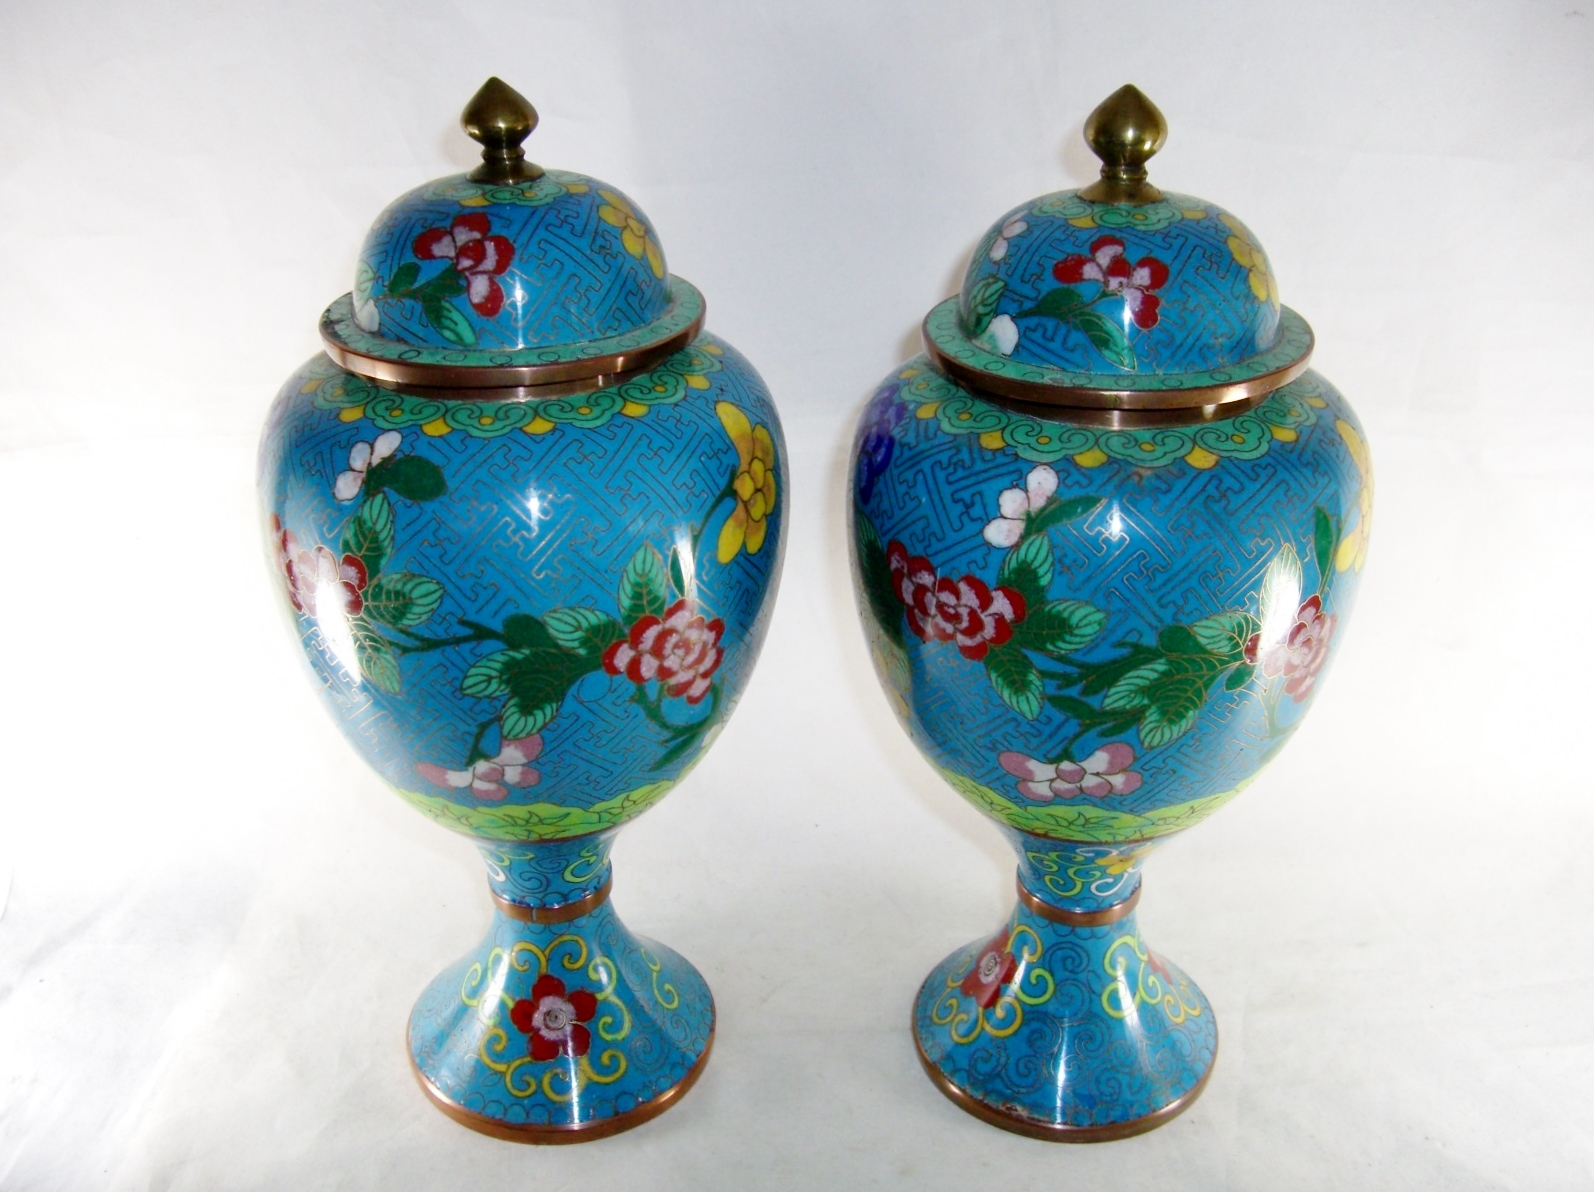 Flower Urns For Sale Pair Chinese Cloisonne Covered Vases Flowers Antique For